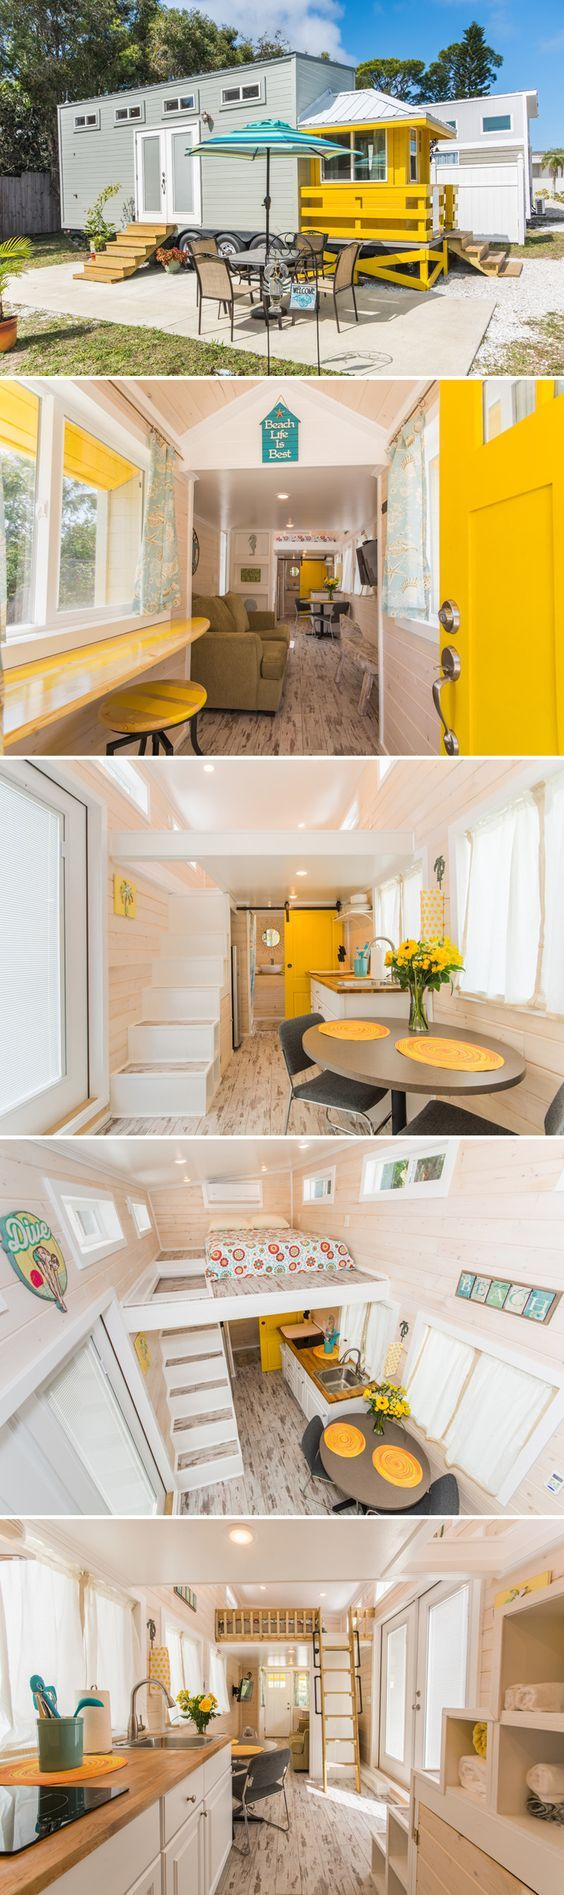 Tiny Luxury Homes 163